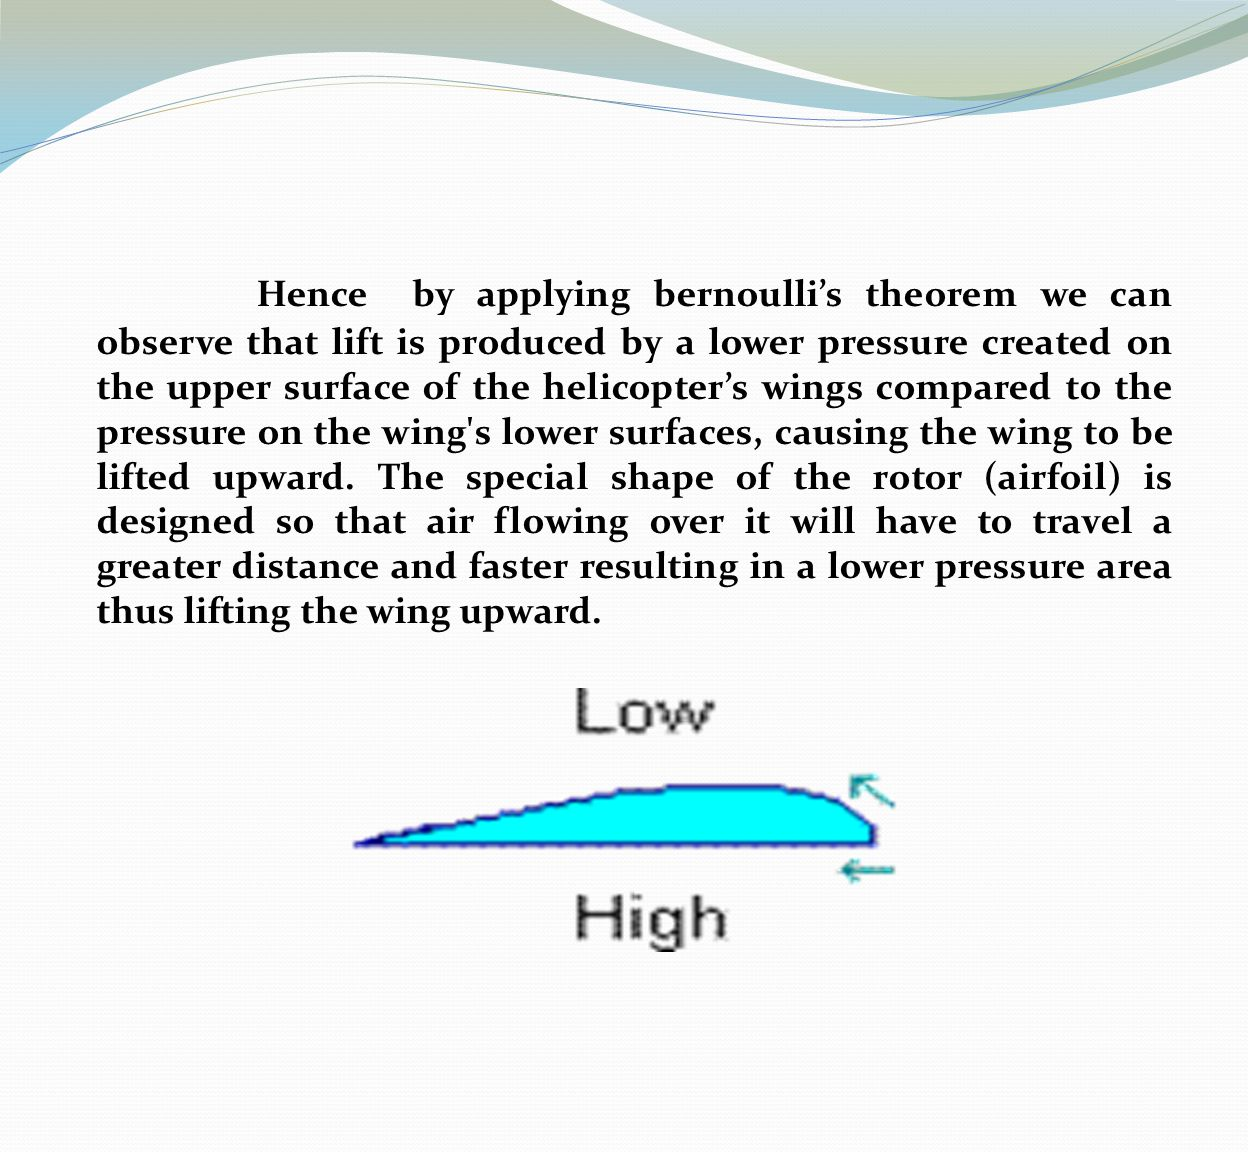 Hence by applying bernoulli's theorem we can observe that lift is produced by a lower pressure created on the upper surface of the helicopter's wings compared to the pressure on the wing s lower surfaces, causing the wing to be lifted upward.